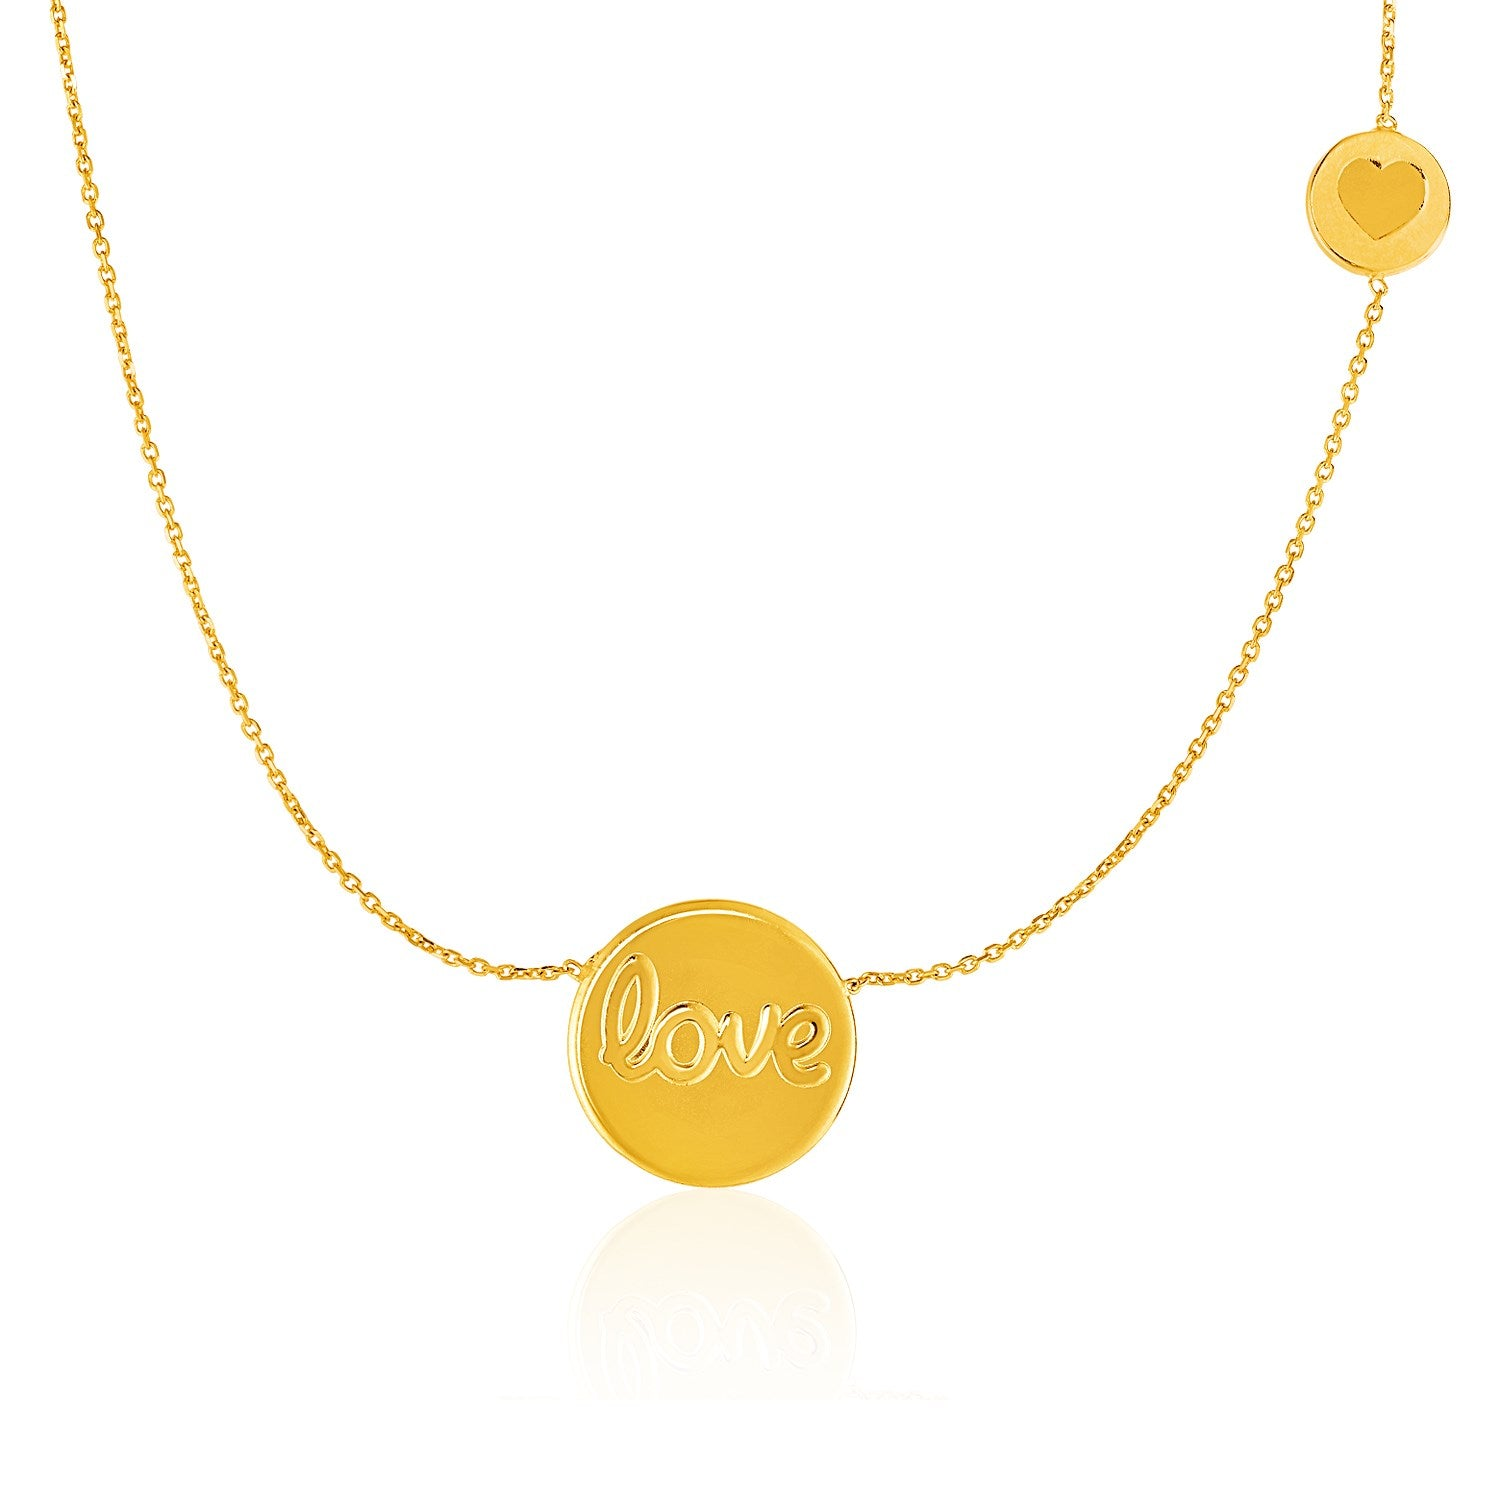 14K Yellow Gold Necklace with Round ''Love'' and Heart Elements